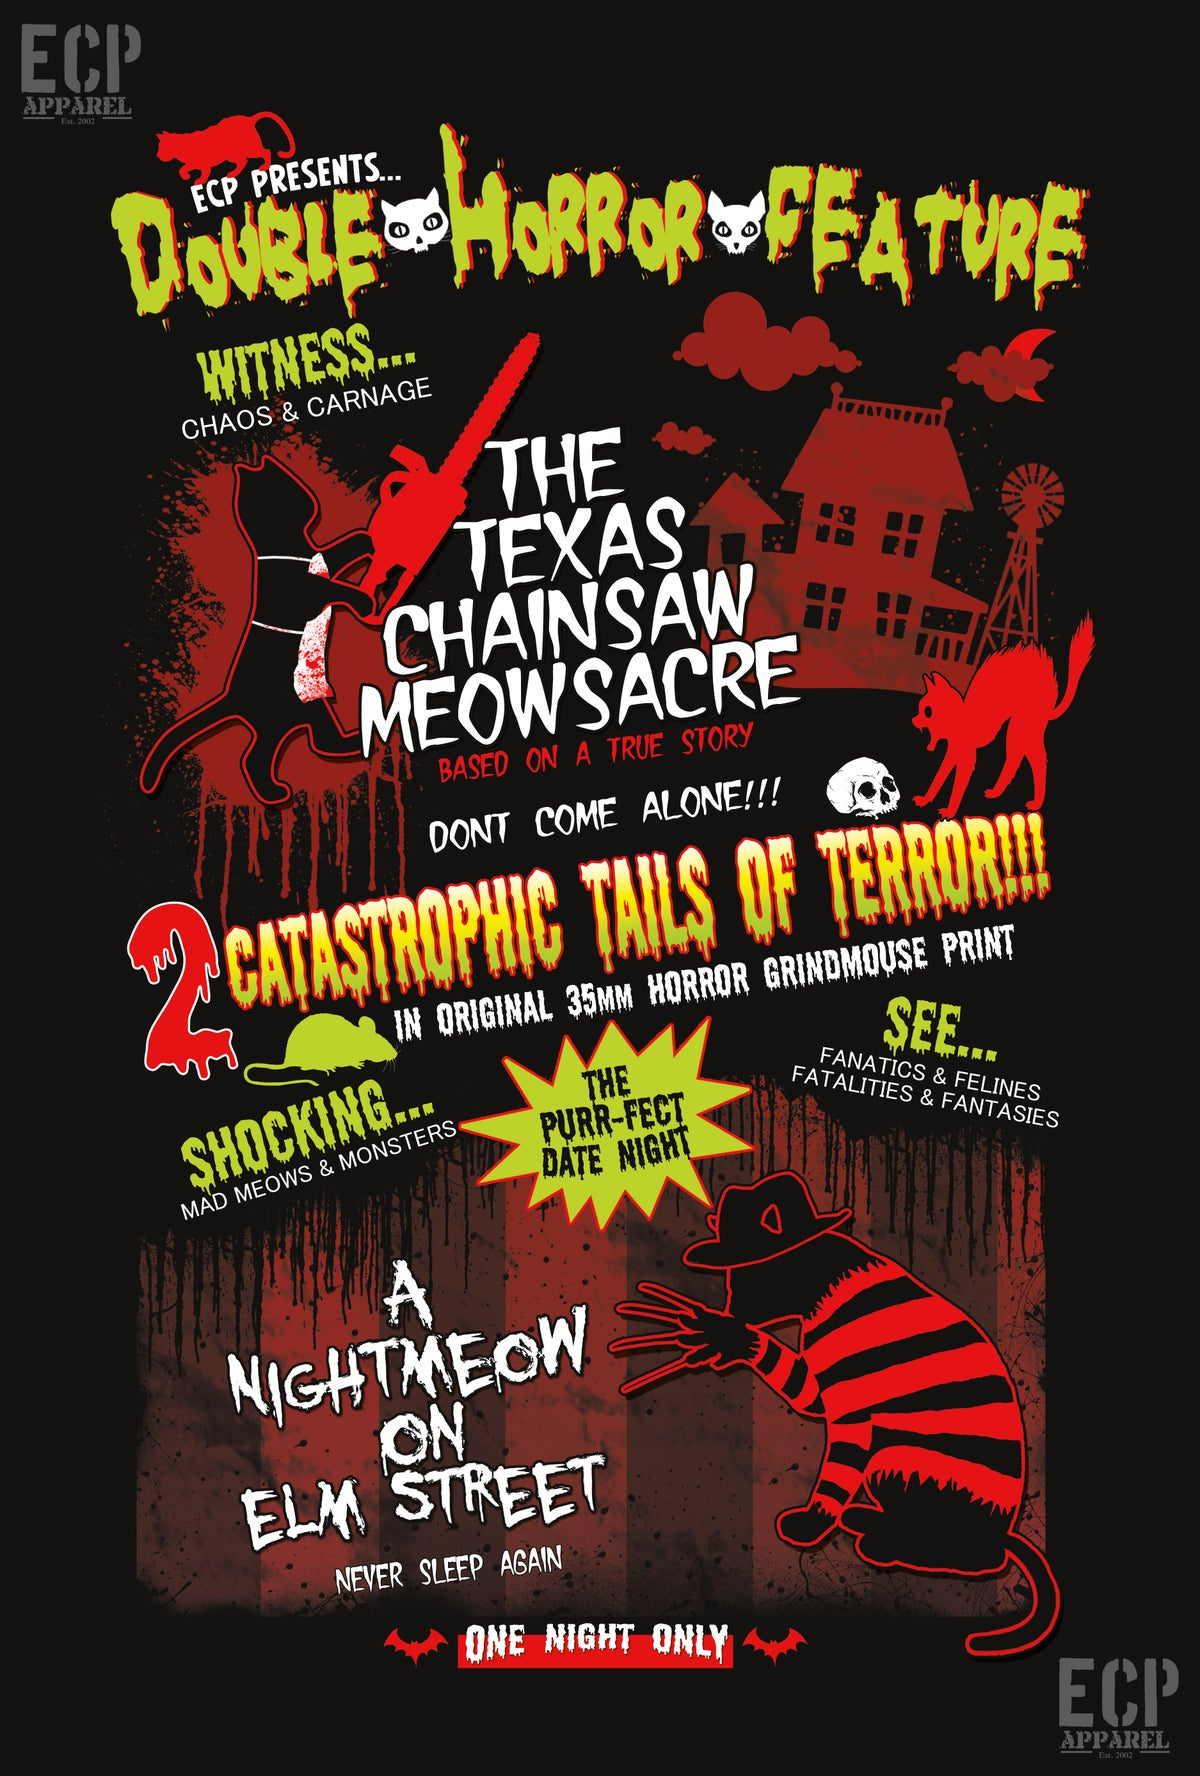 Texas Chainsaw Meowsacre/ Nightmeow On Elm St. Limited Print